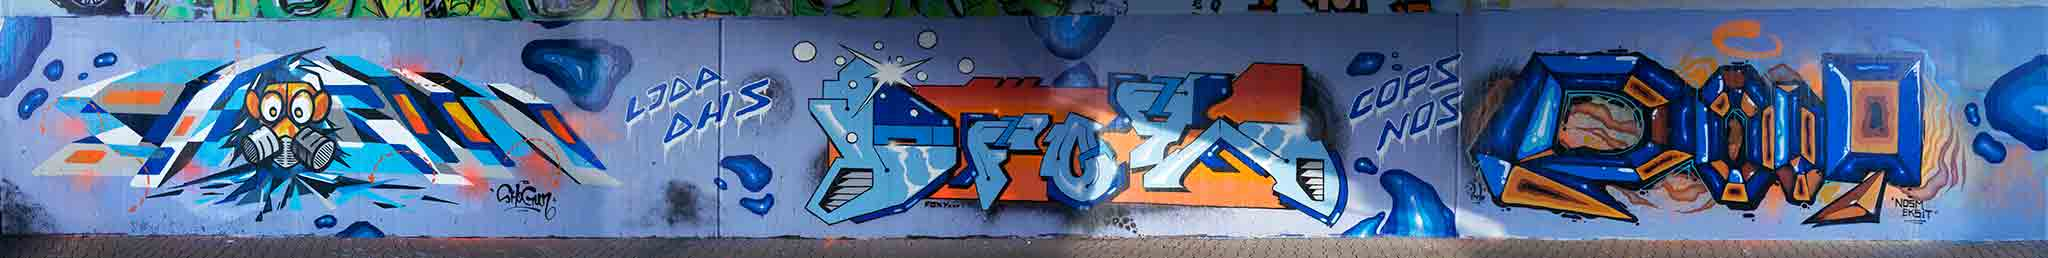 shogun_graffiti_eller_secondwall_2